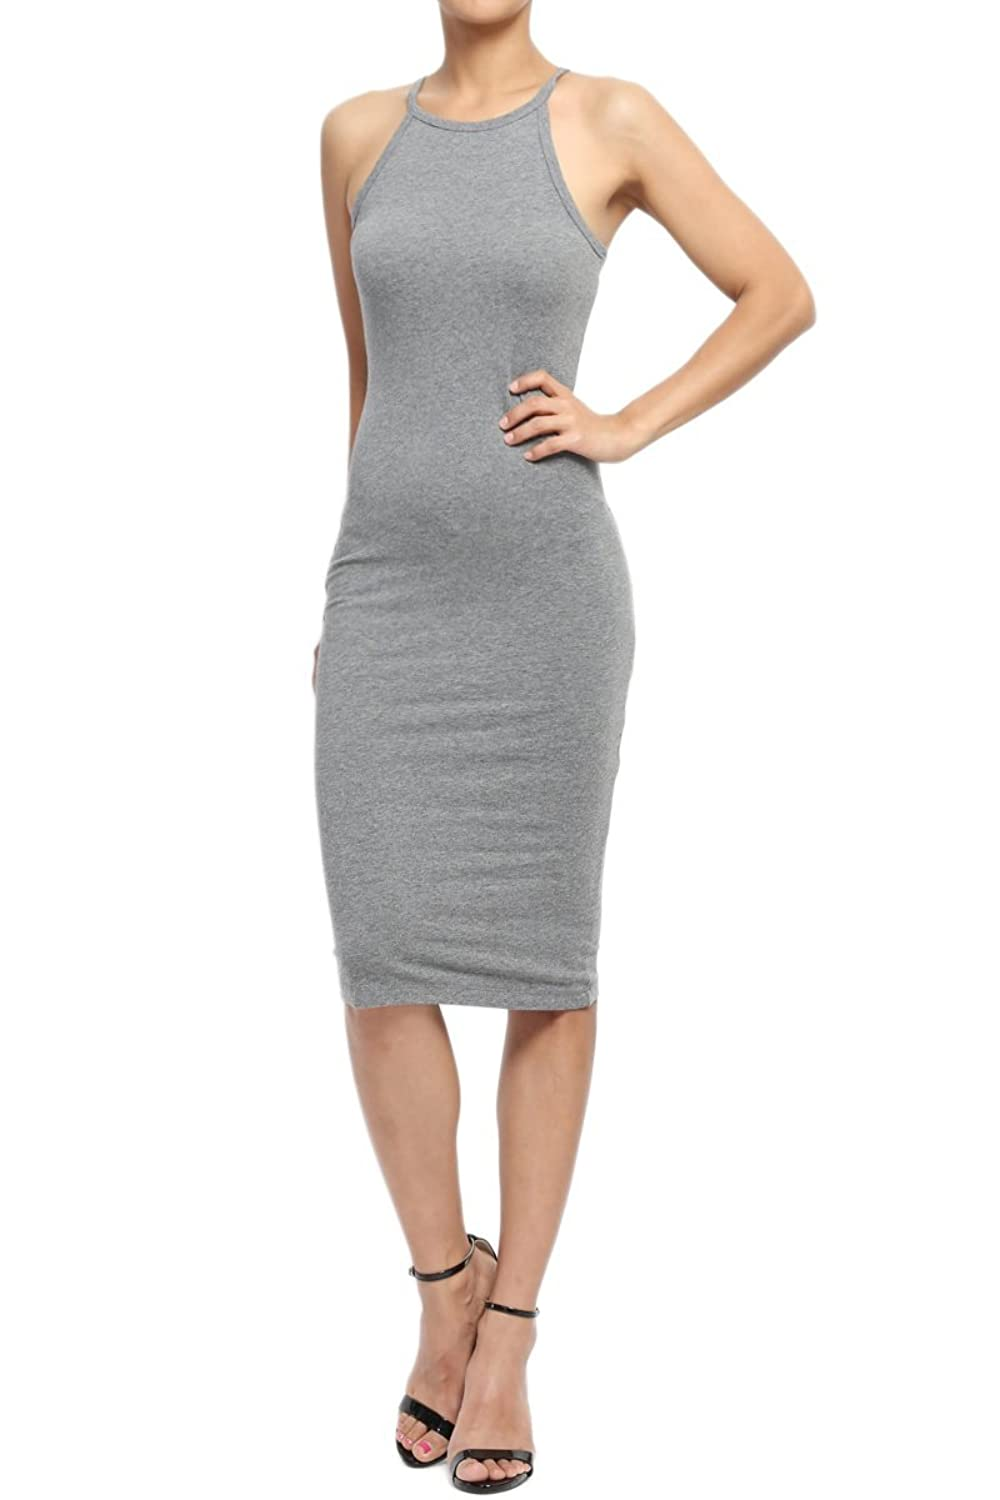 TheMogan Women's Sleeveless Scoop Neck Racerback Tank Bodycon Pencil Midi Dress